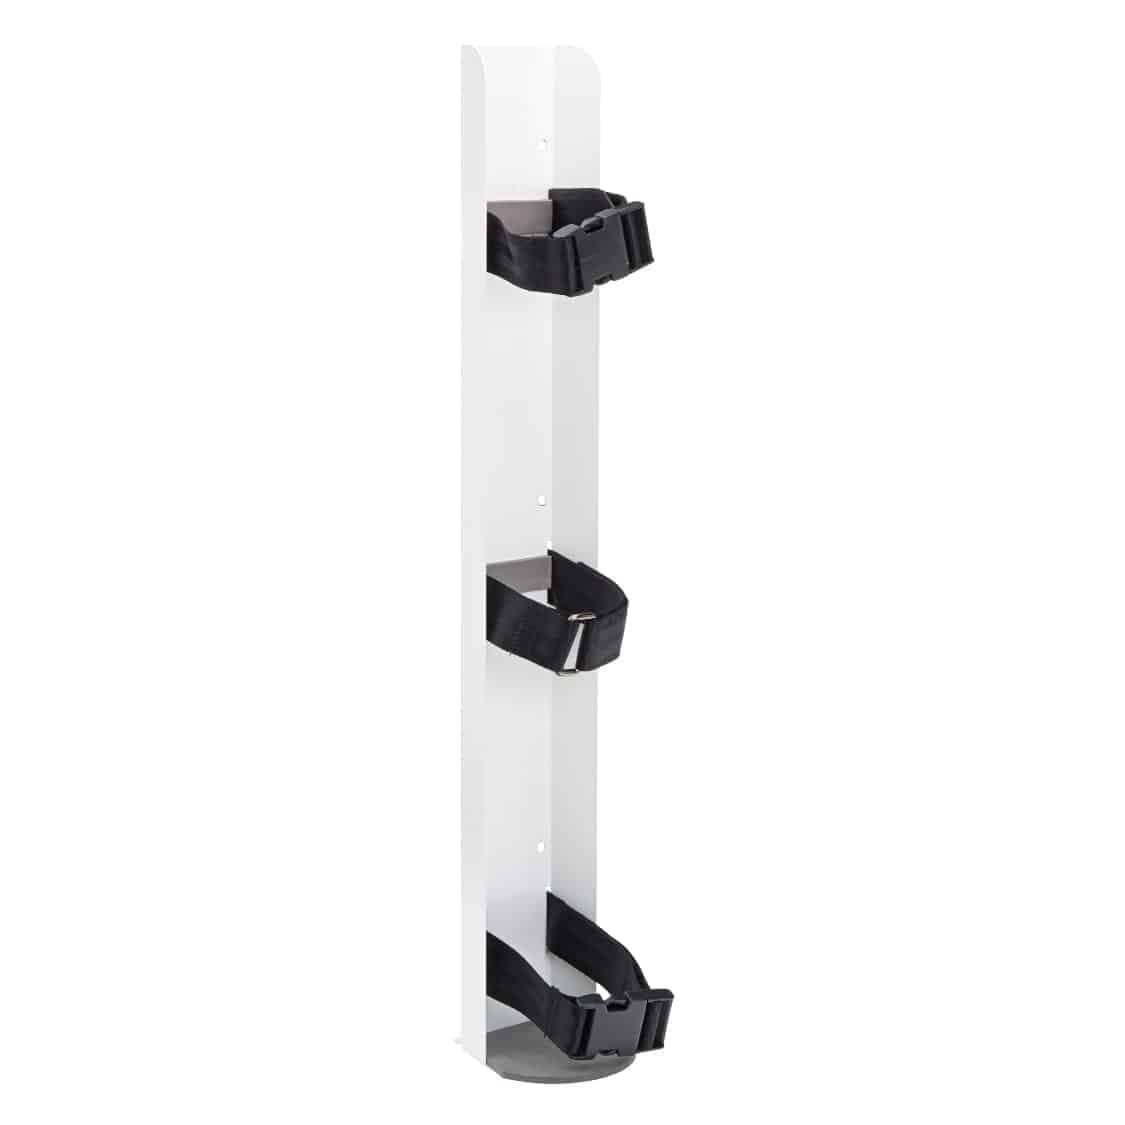 Oxygen holder (Large) & side rail